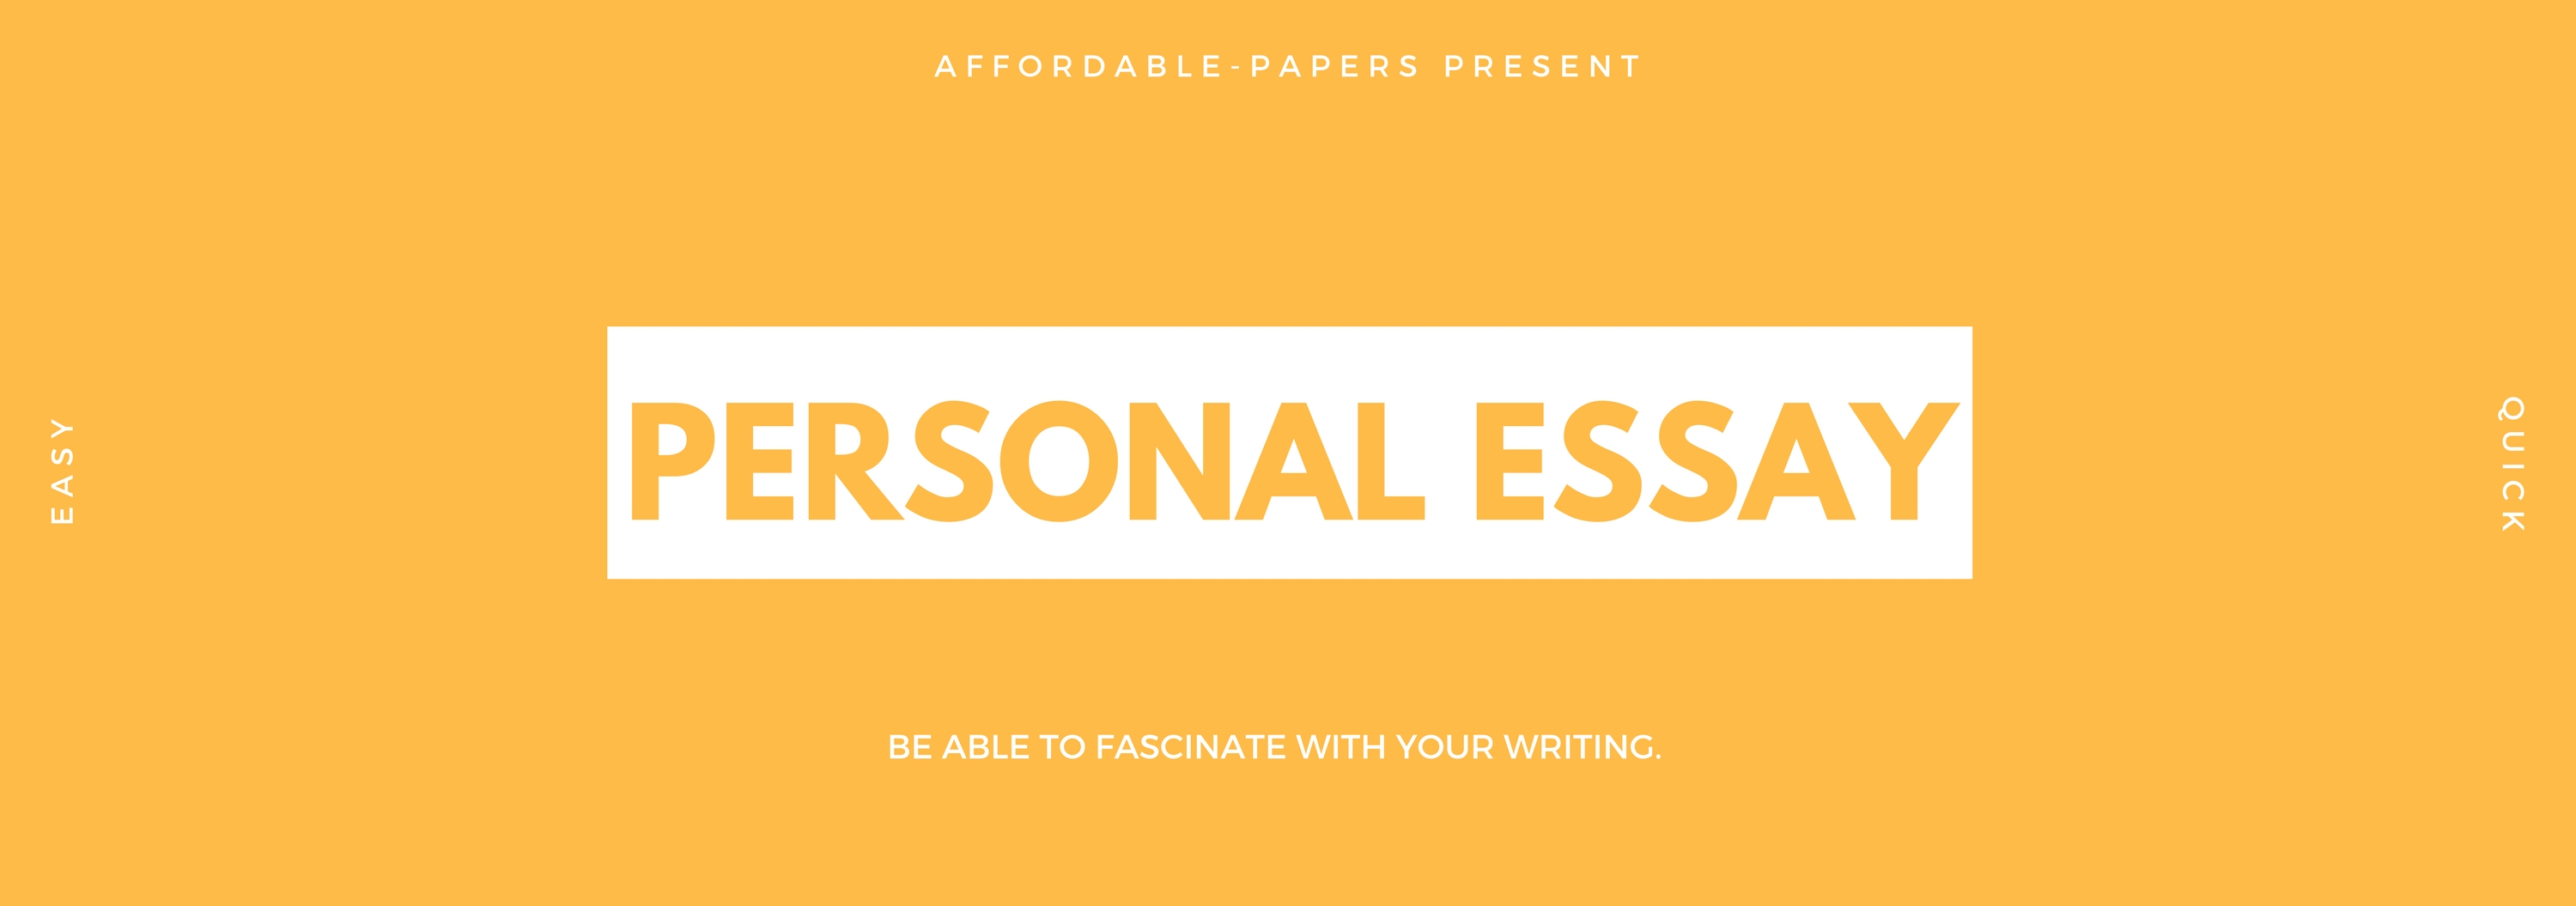 Affordable essay papers